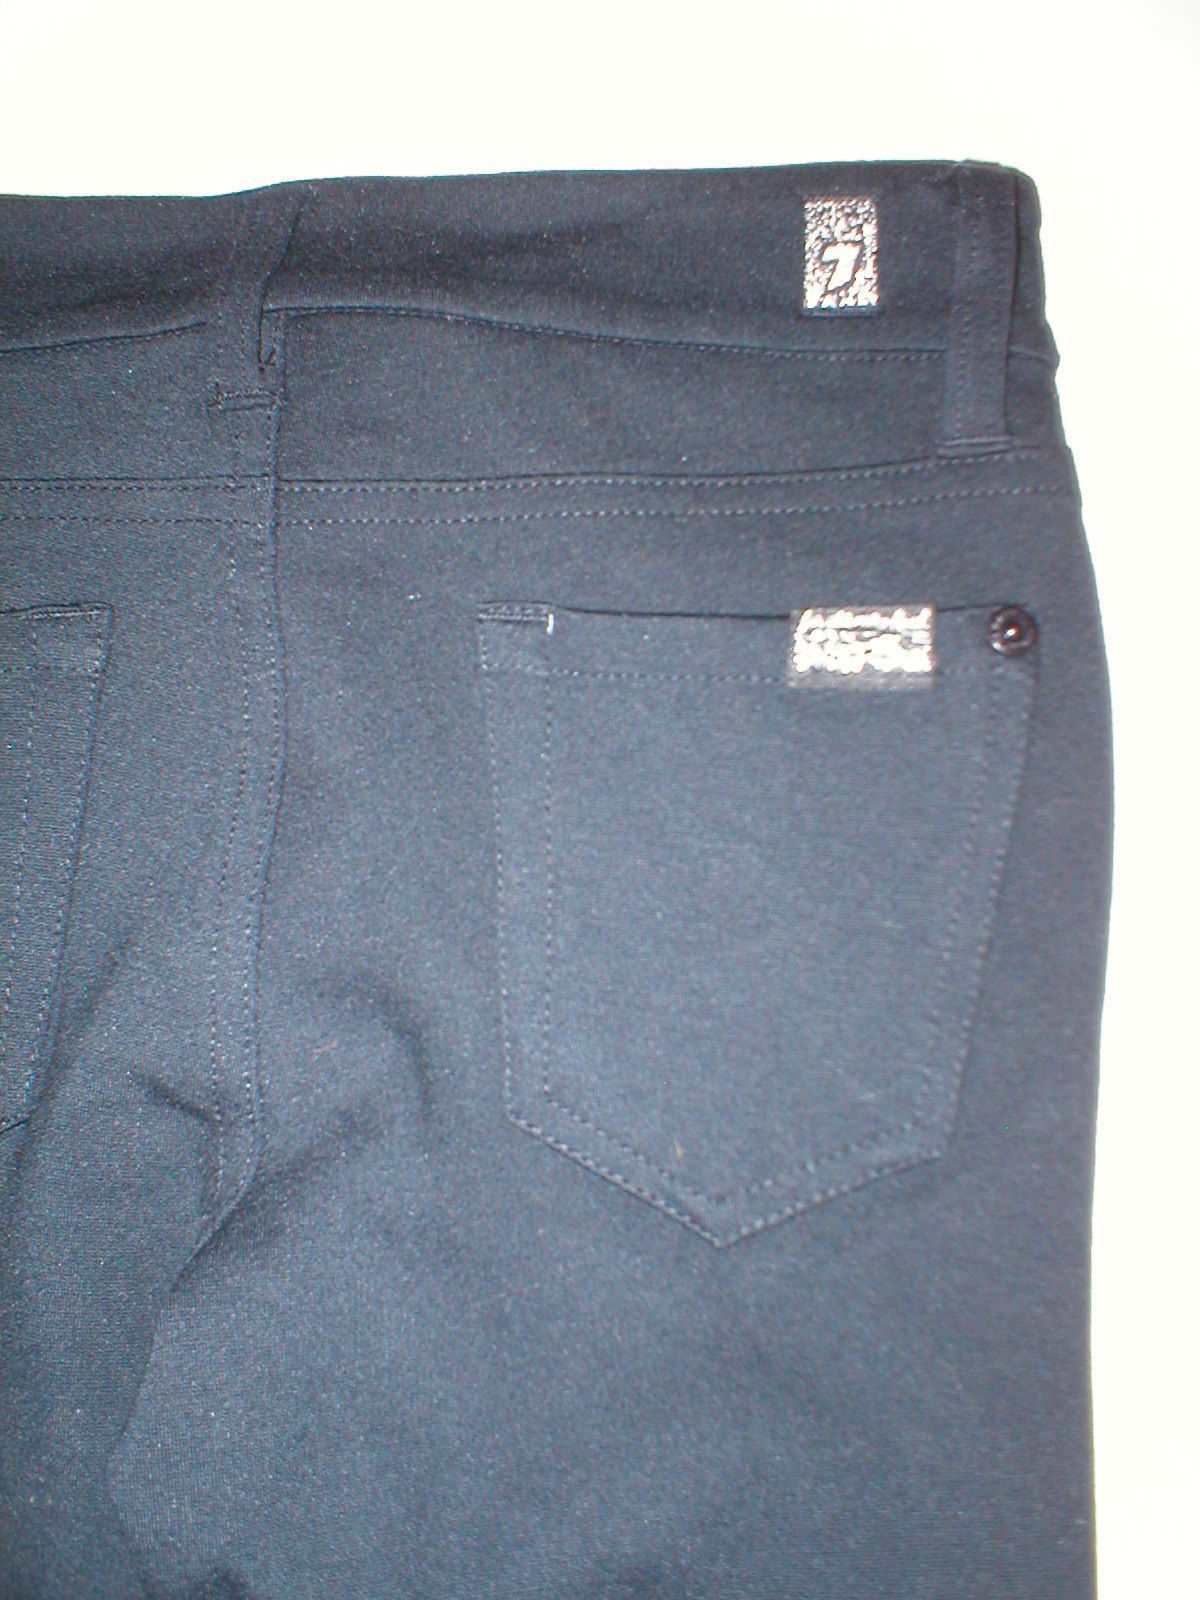 New Girls Jeans The Skinny 7 for all mankind 12 NWT Leggings Black Pants Rayon image 4